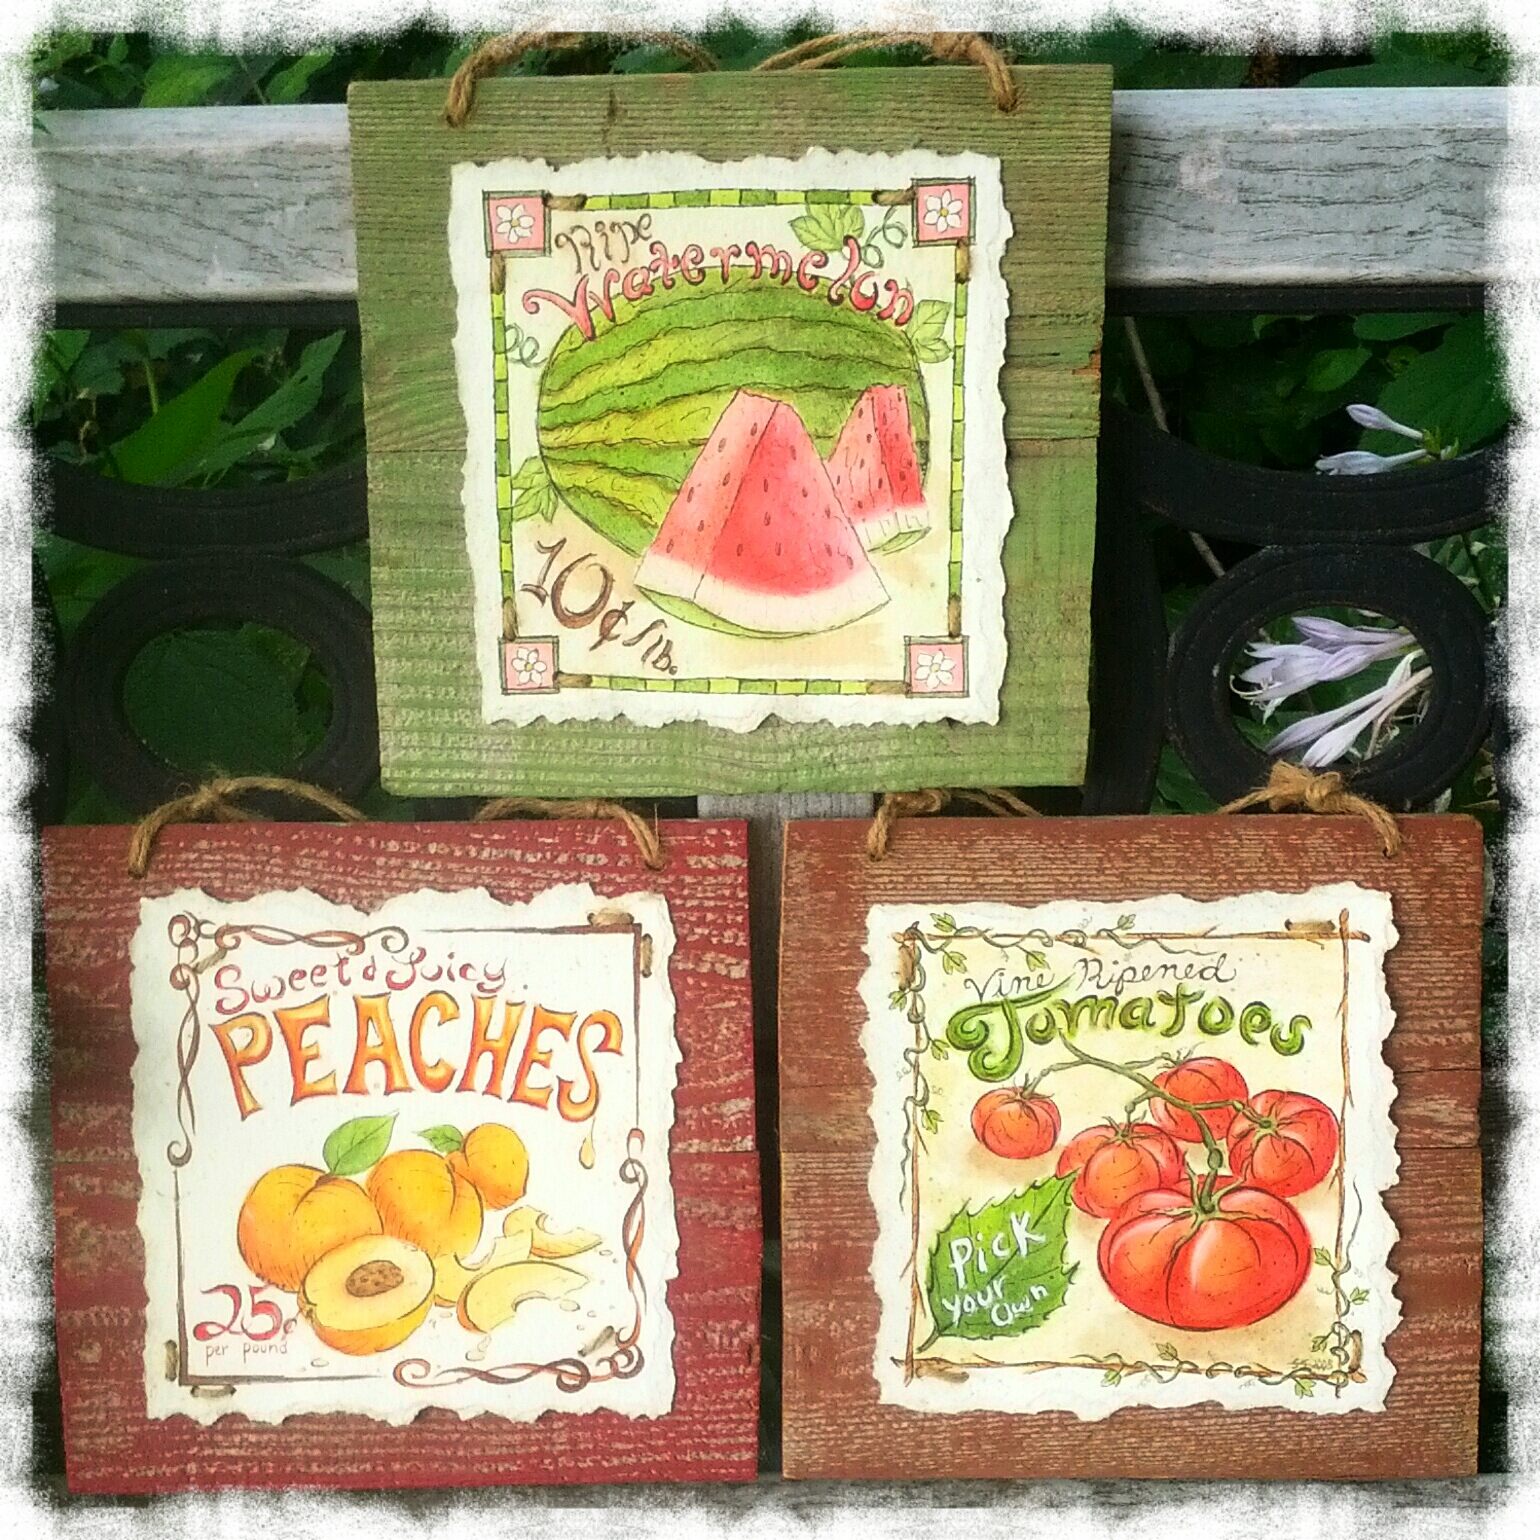 Watercolor fruit and vegetable farmers market sign paintings by Shalom Schultz Designs. Vintage style typography design. Watermelon, peaches, tomatoes. Country cottage style art.